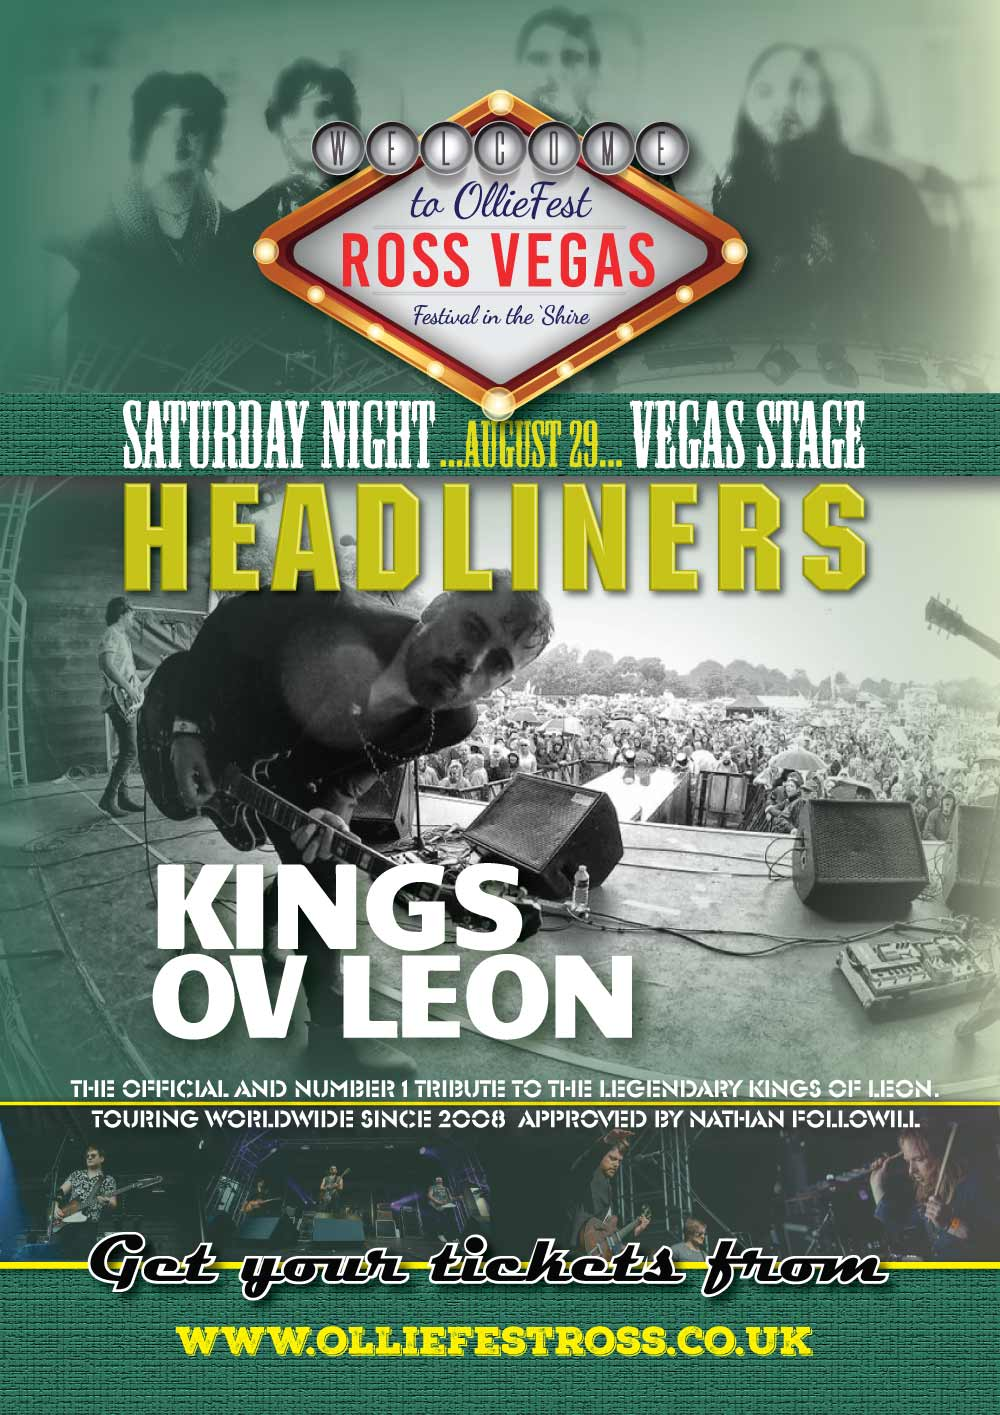 Kings Ov Leon Headlining the Vegas Stage at OllieFest on Saturday August 29th, 2020